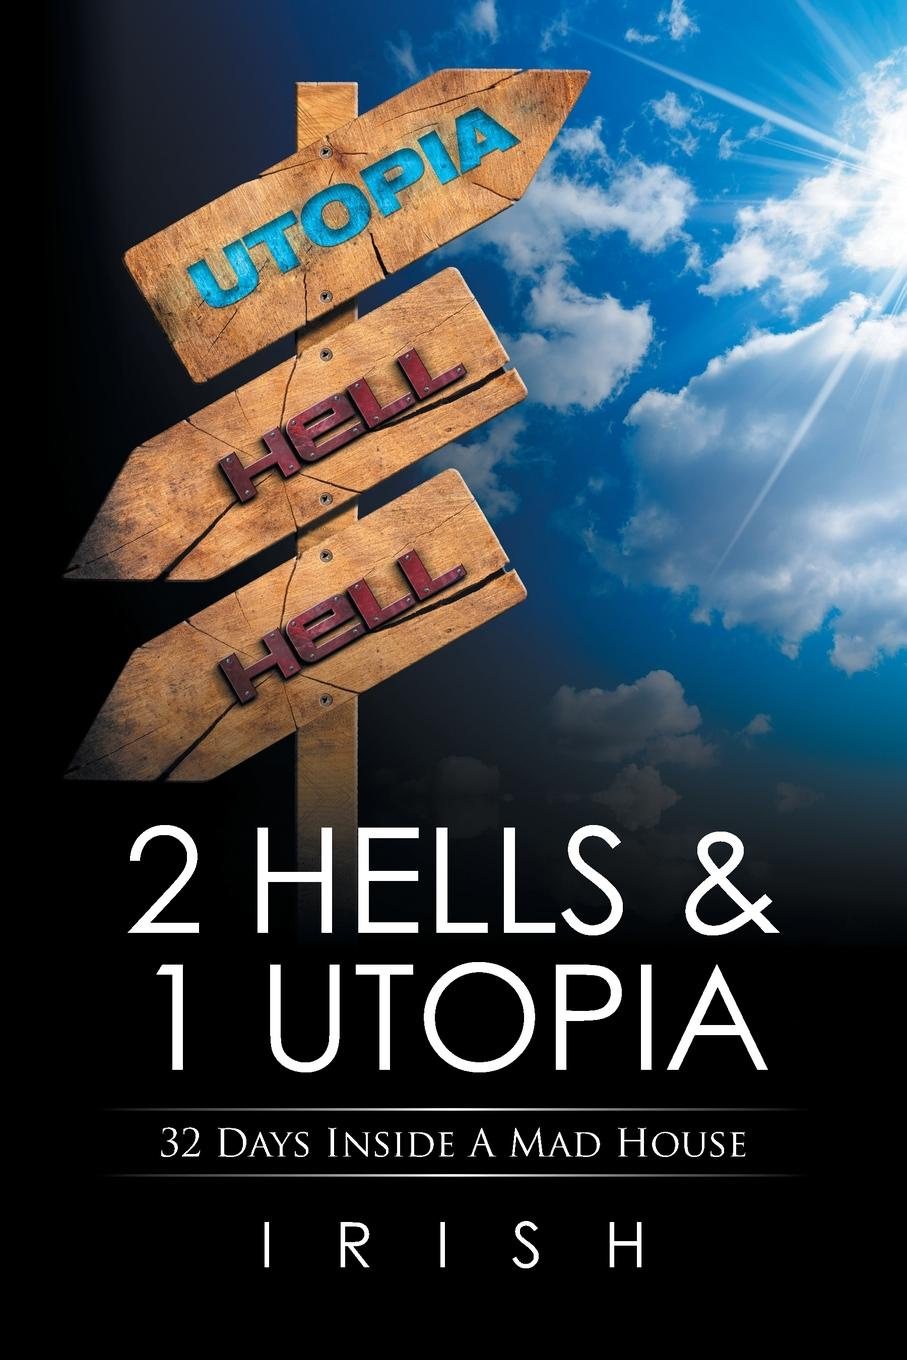 IRISH 2 HELLS & 1 UTOPIA. 32 Days Inside A Mad House inside utopia visionary interiors and futuristic homes